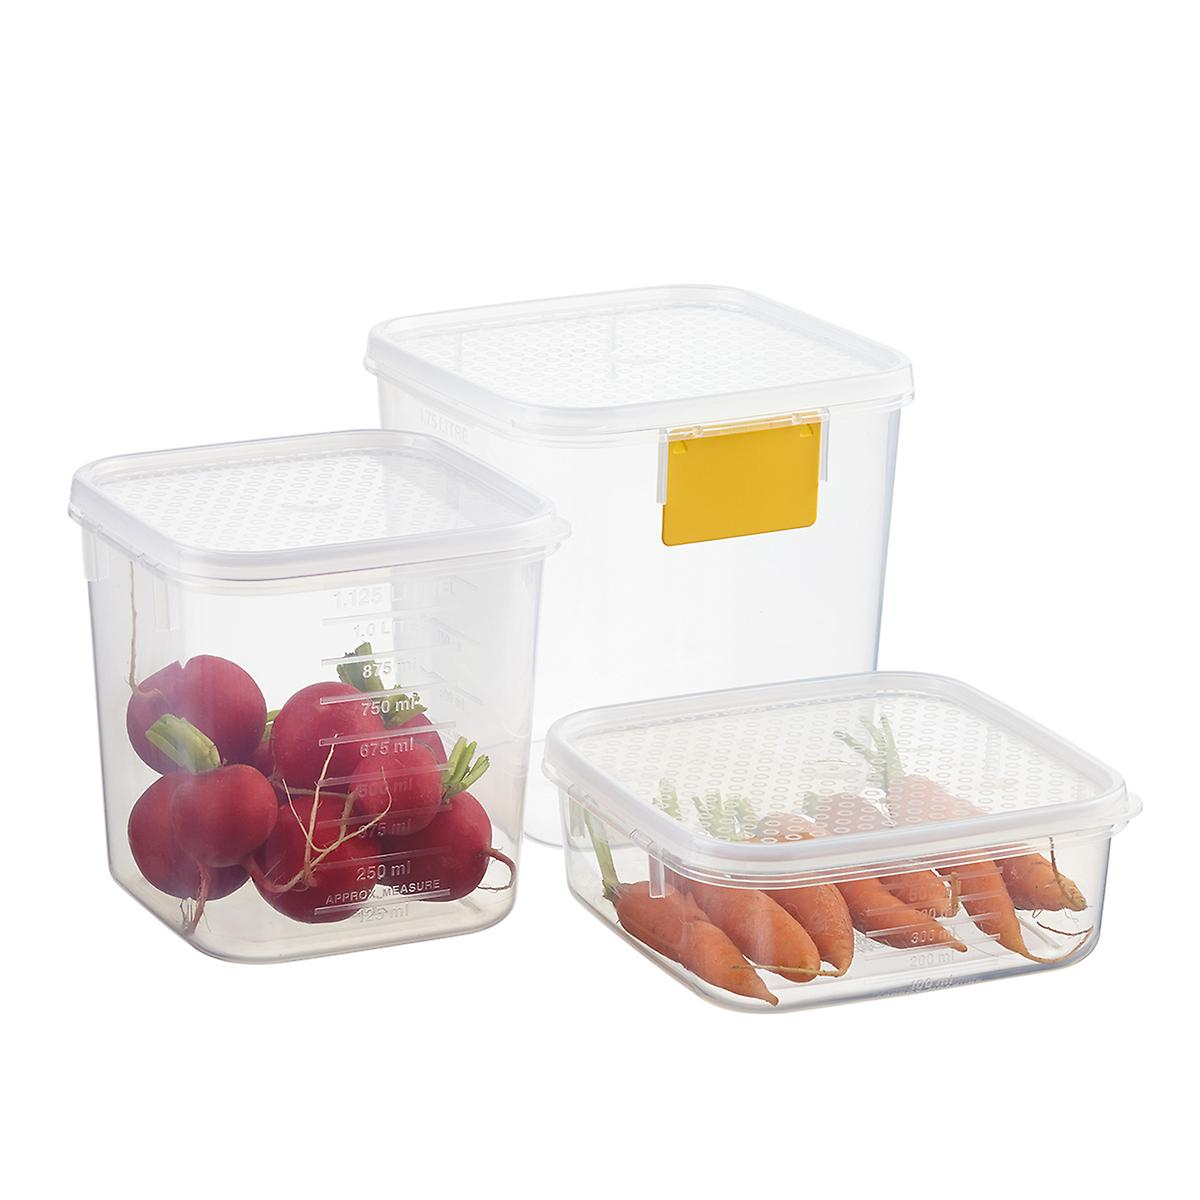 tellfresh square food storage the container store. Black Bedroom Furniture Sets. Home Design Ideas